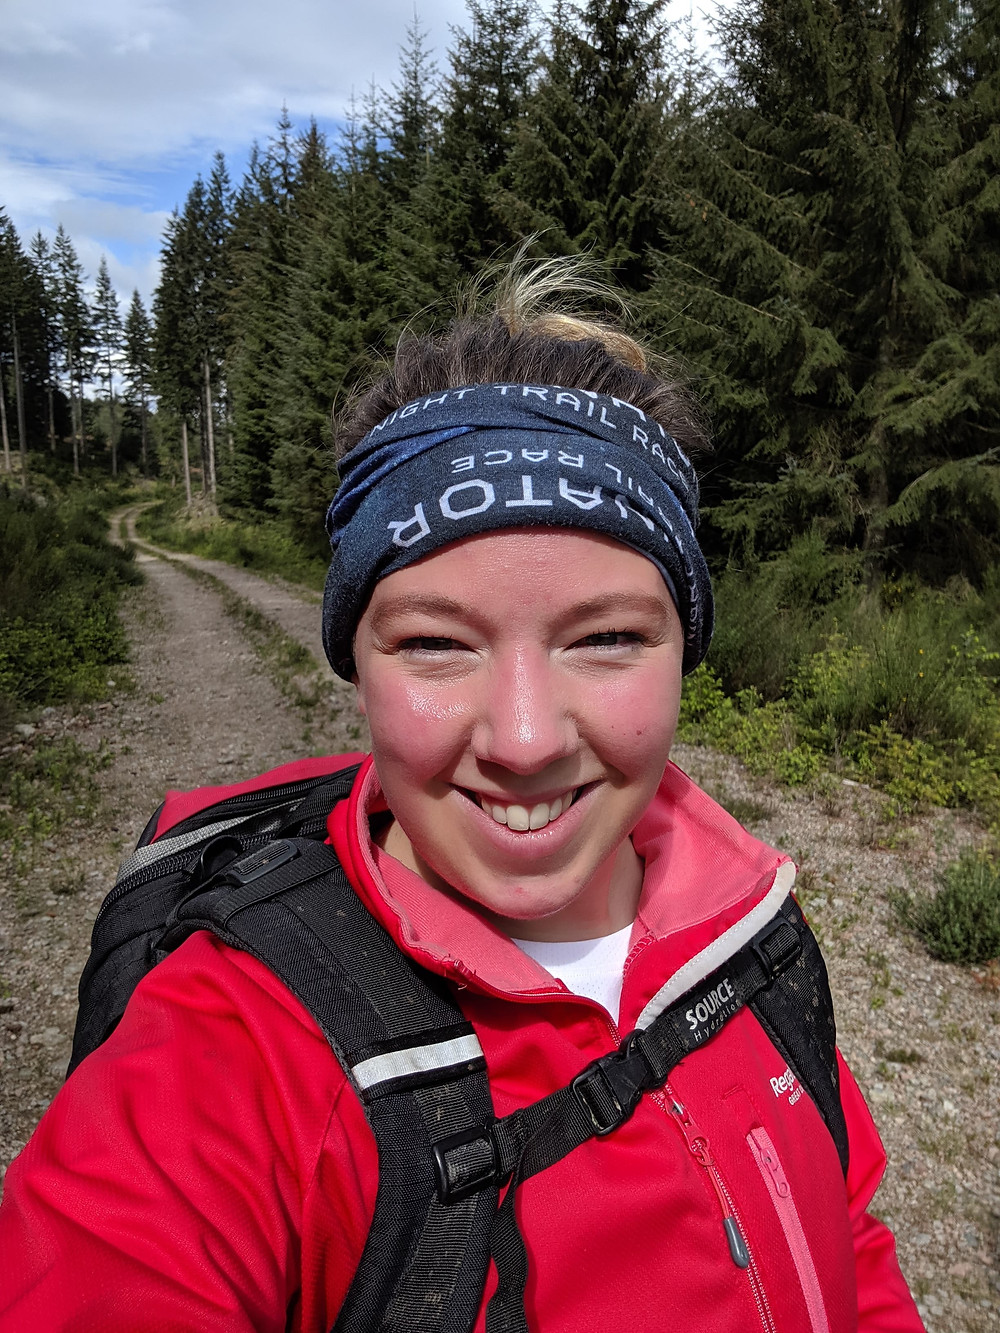 Victoria Phillips-Kennedy aka blogger LadyV - @inladyvsshoes - Illuminator night trail race Scotland